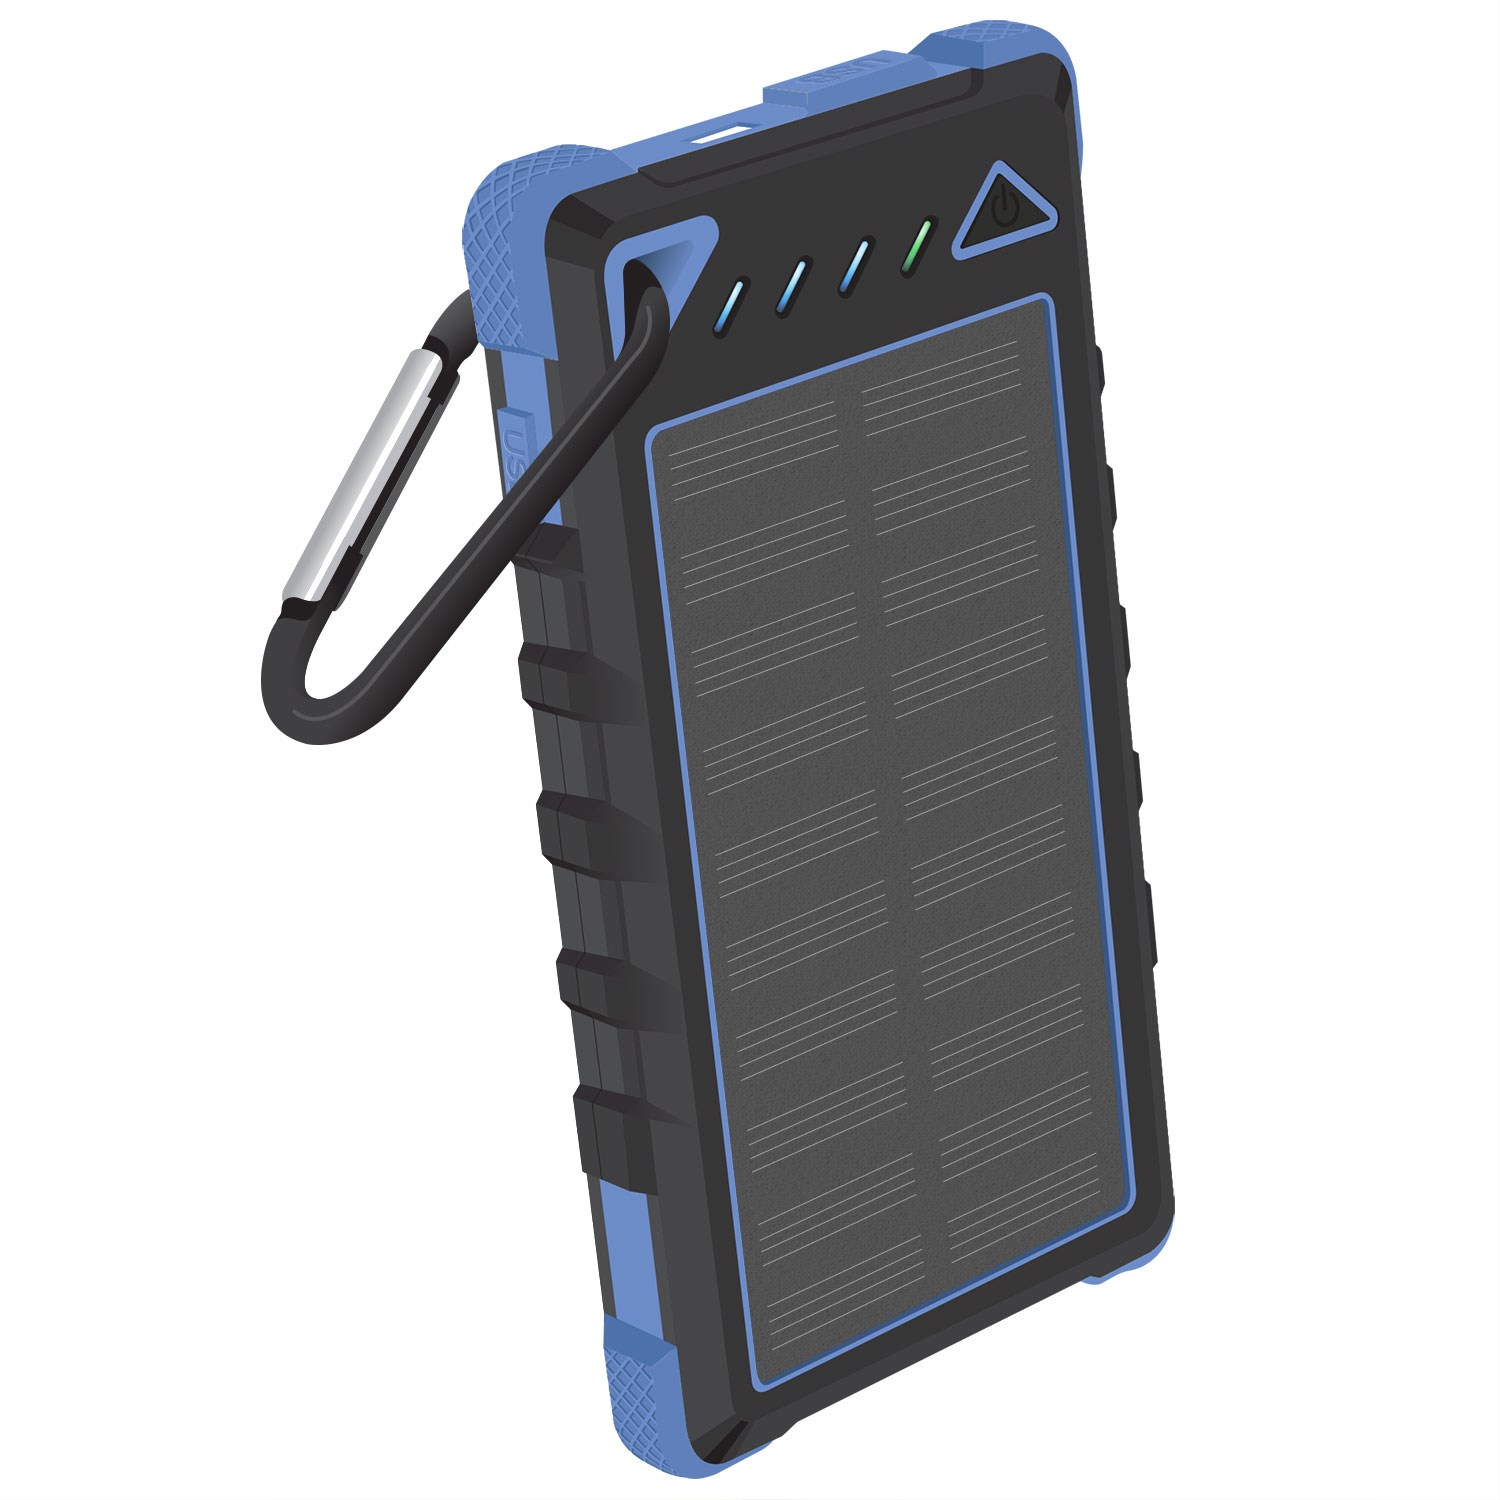 LG Intuition Solar Powered Portable PowerBank Blue